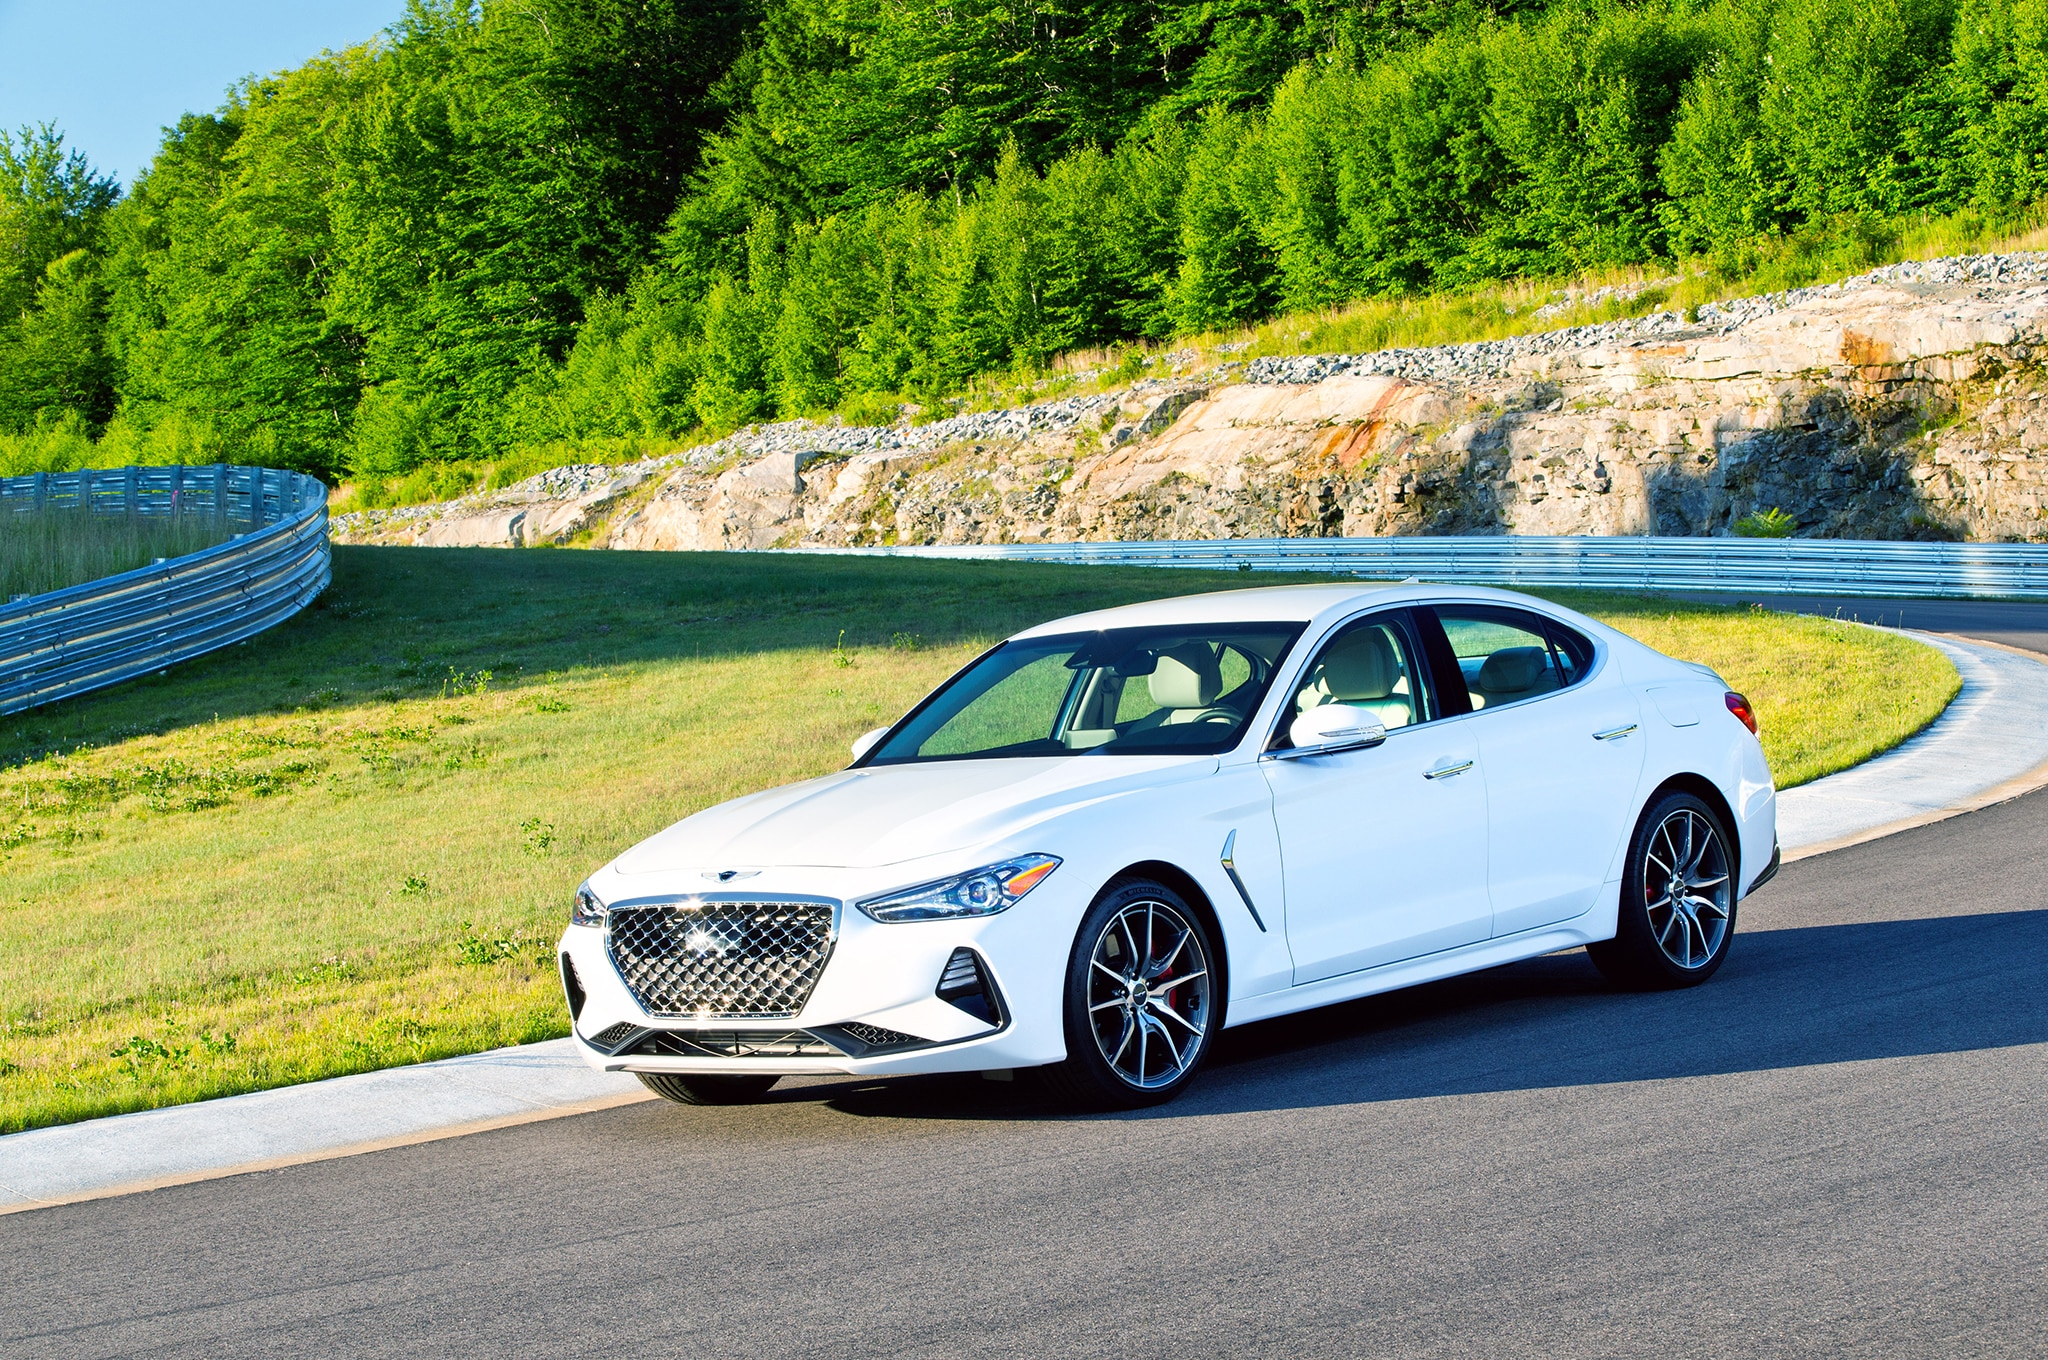 2019 genesis g70 first drive review automobile magazine 7 Speed Manual Transmission Manual Transmission Diagram